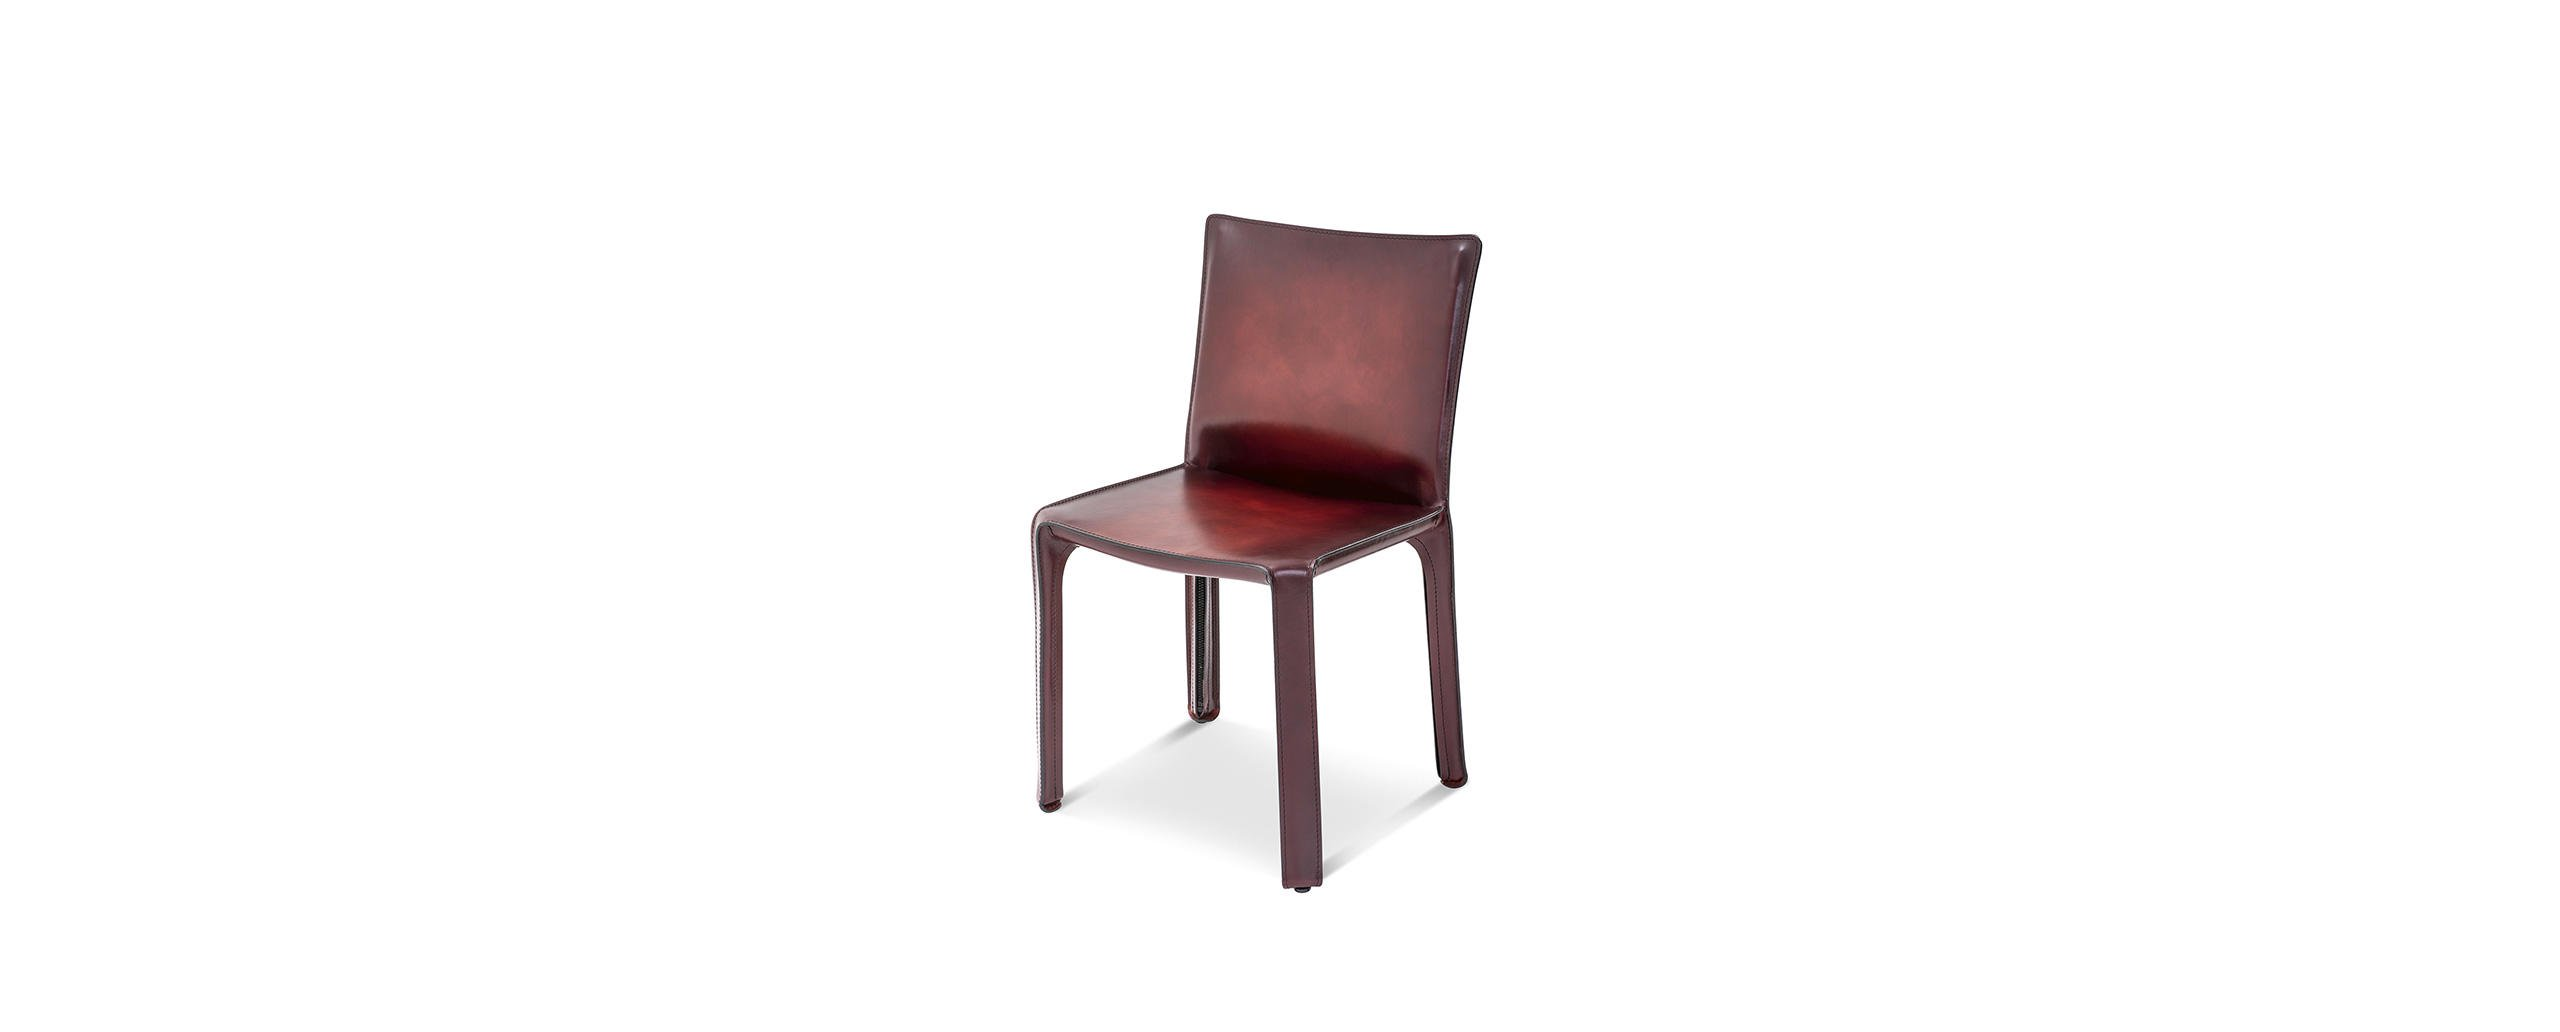 6_cassina_cab_mario_bellini_handcrafted_faded_effect_burgundy